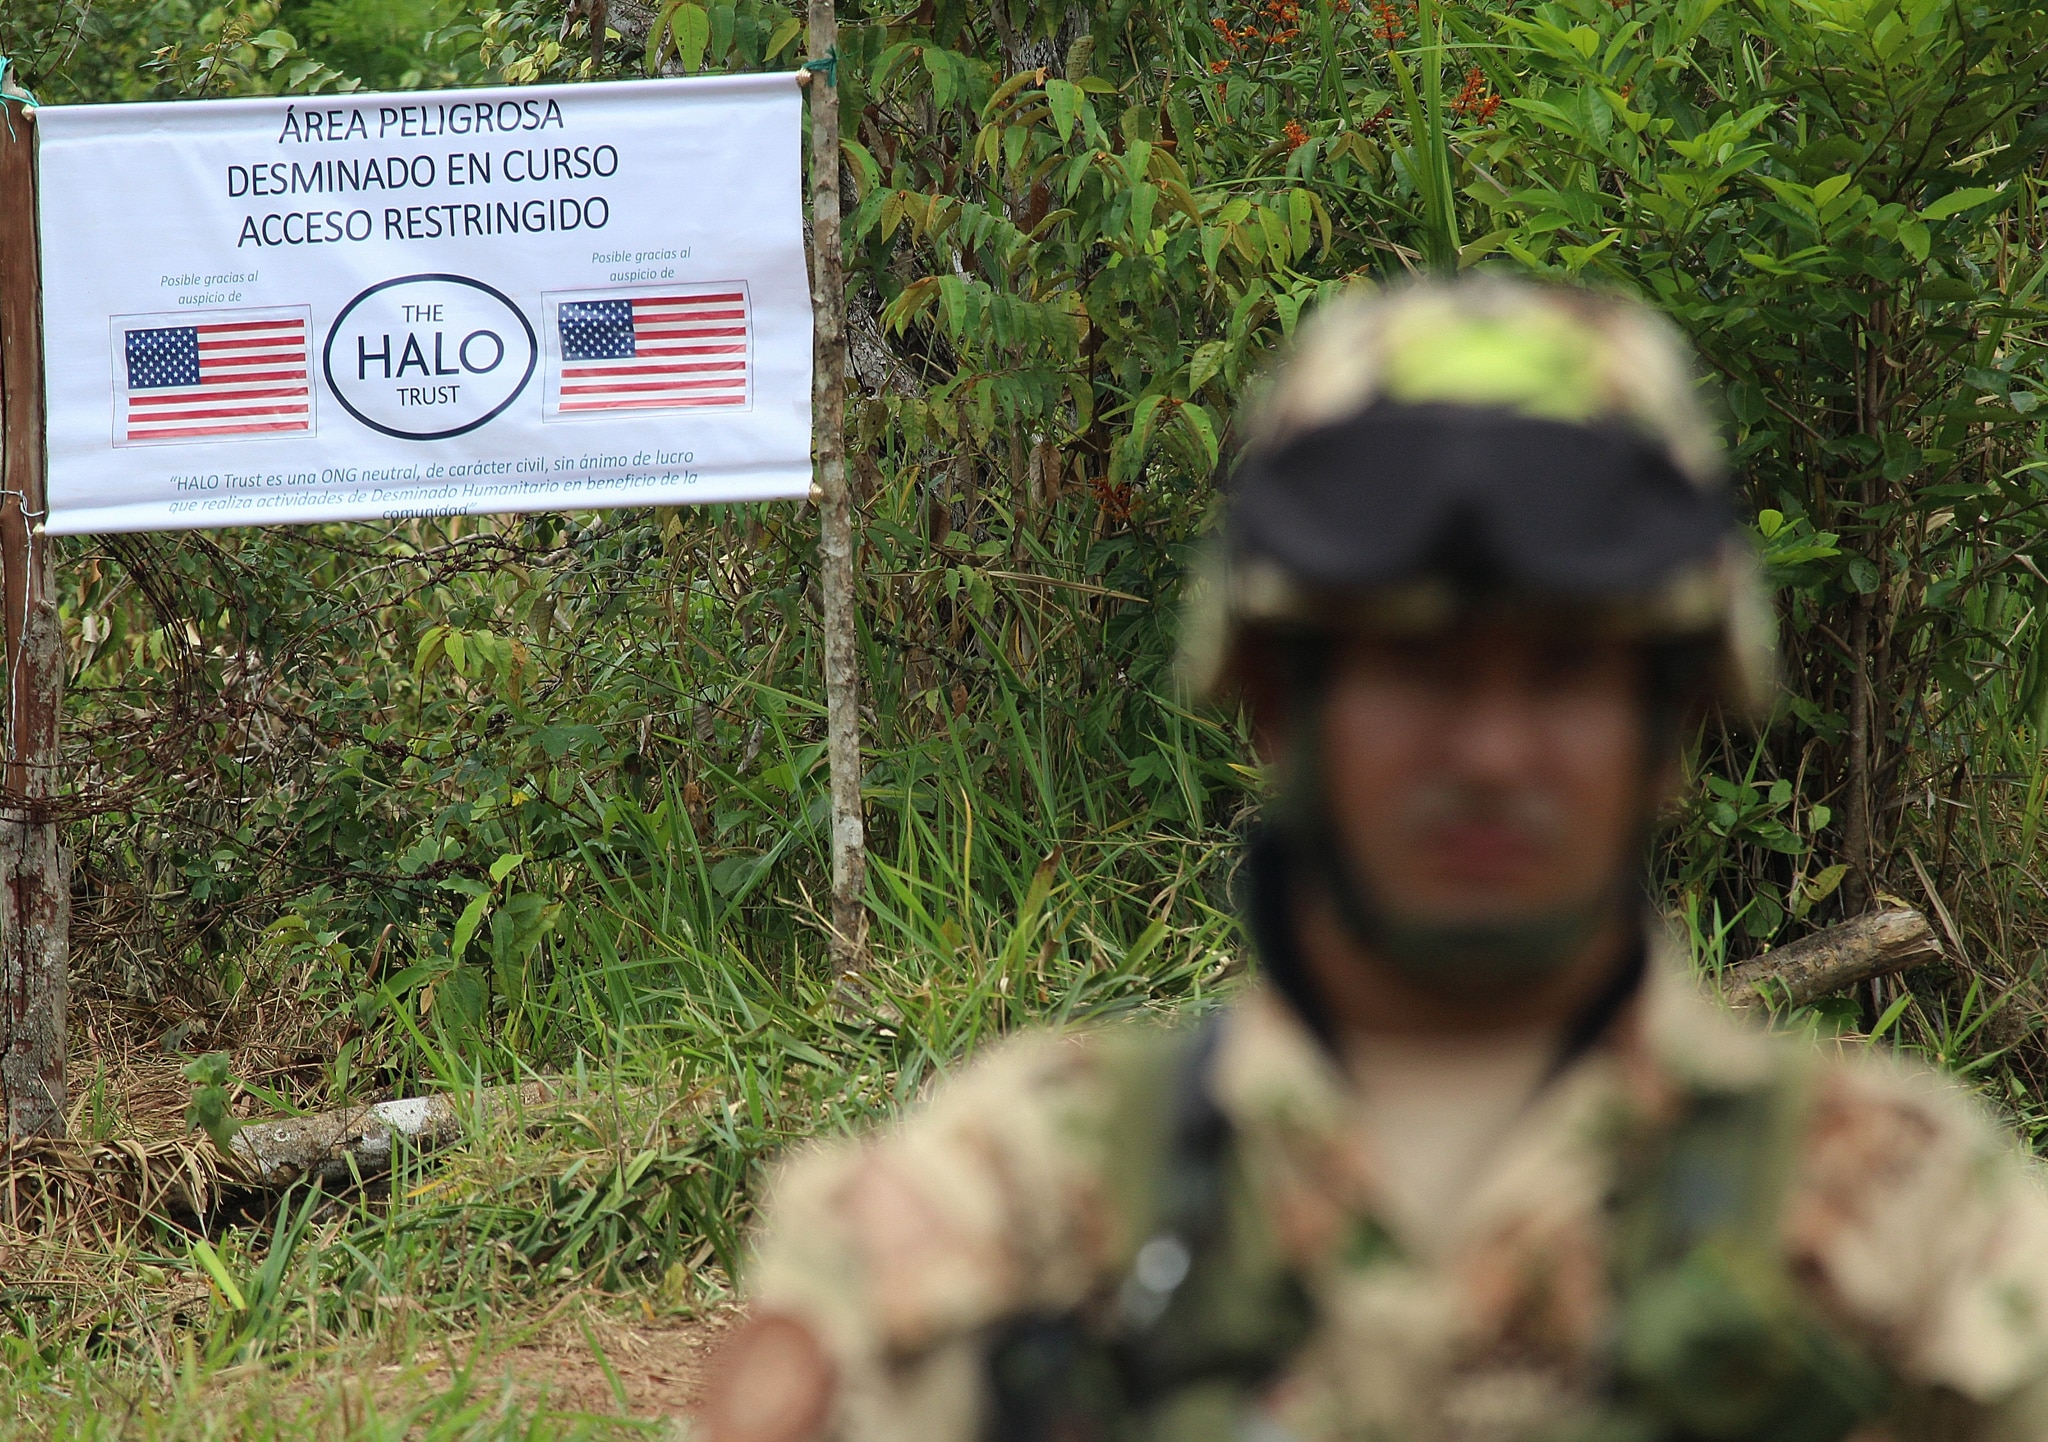 Soldier in front of sign declaring area off-limits (© STR/AFP/Getty Images)